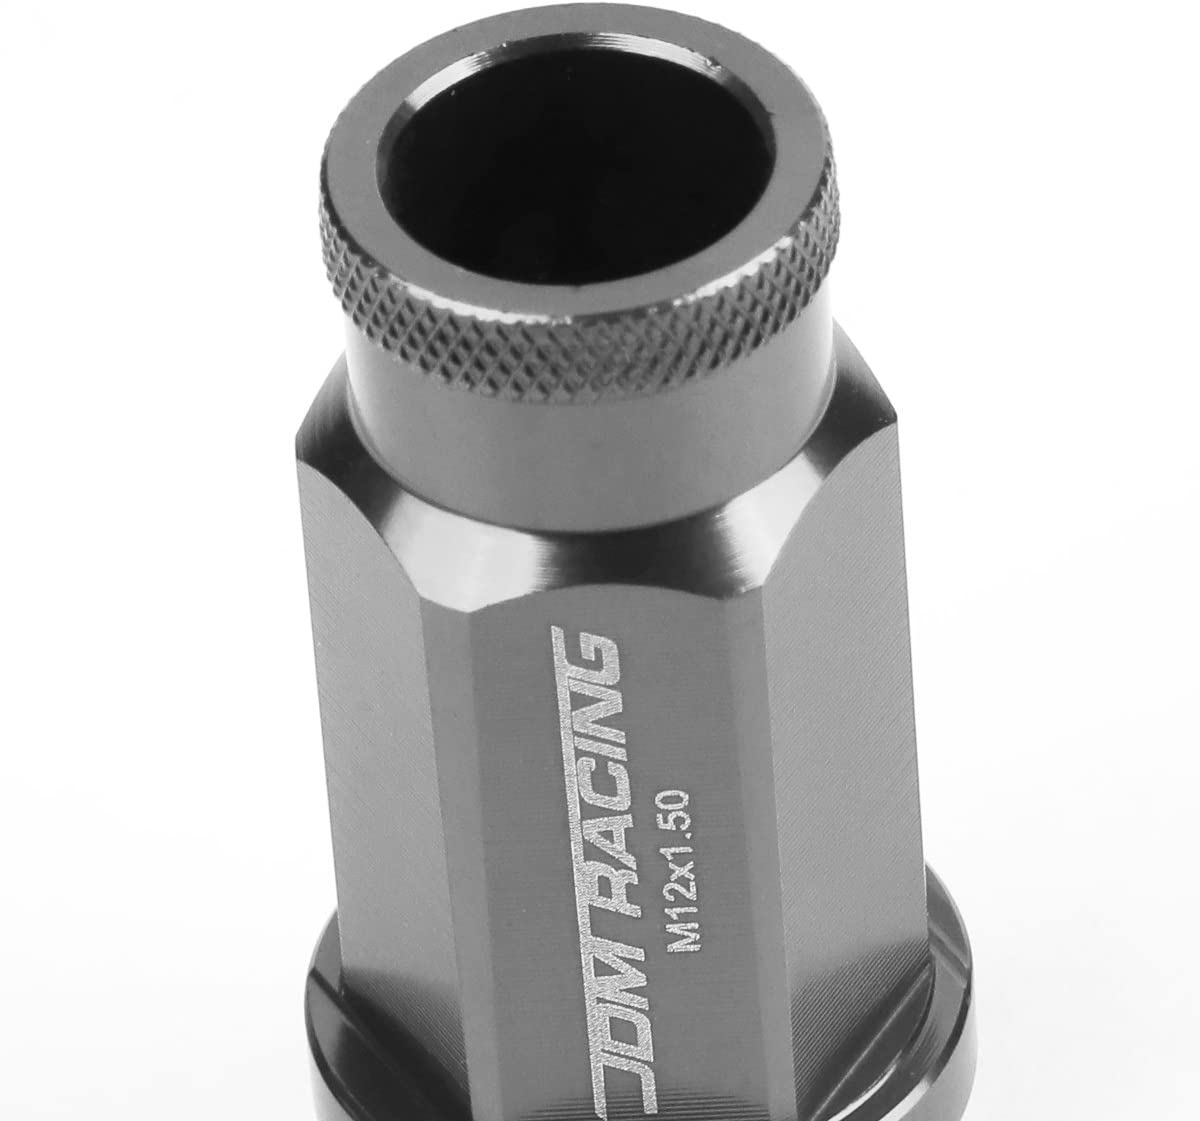 Silver 20-Piece M12 x 1.5 Extended Aluminum Alloy Wheel Lug Nuts+Adapter Key